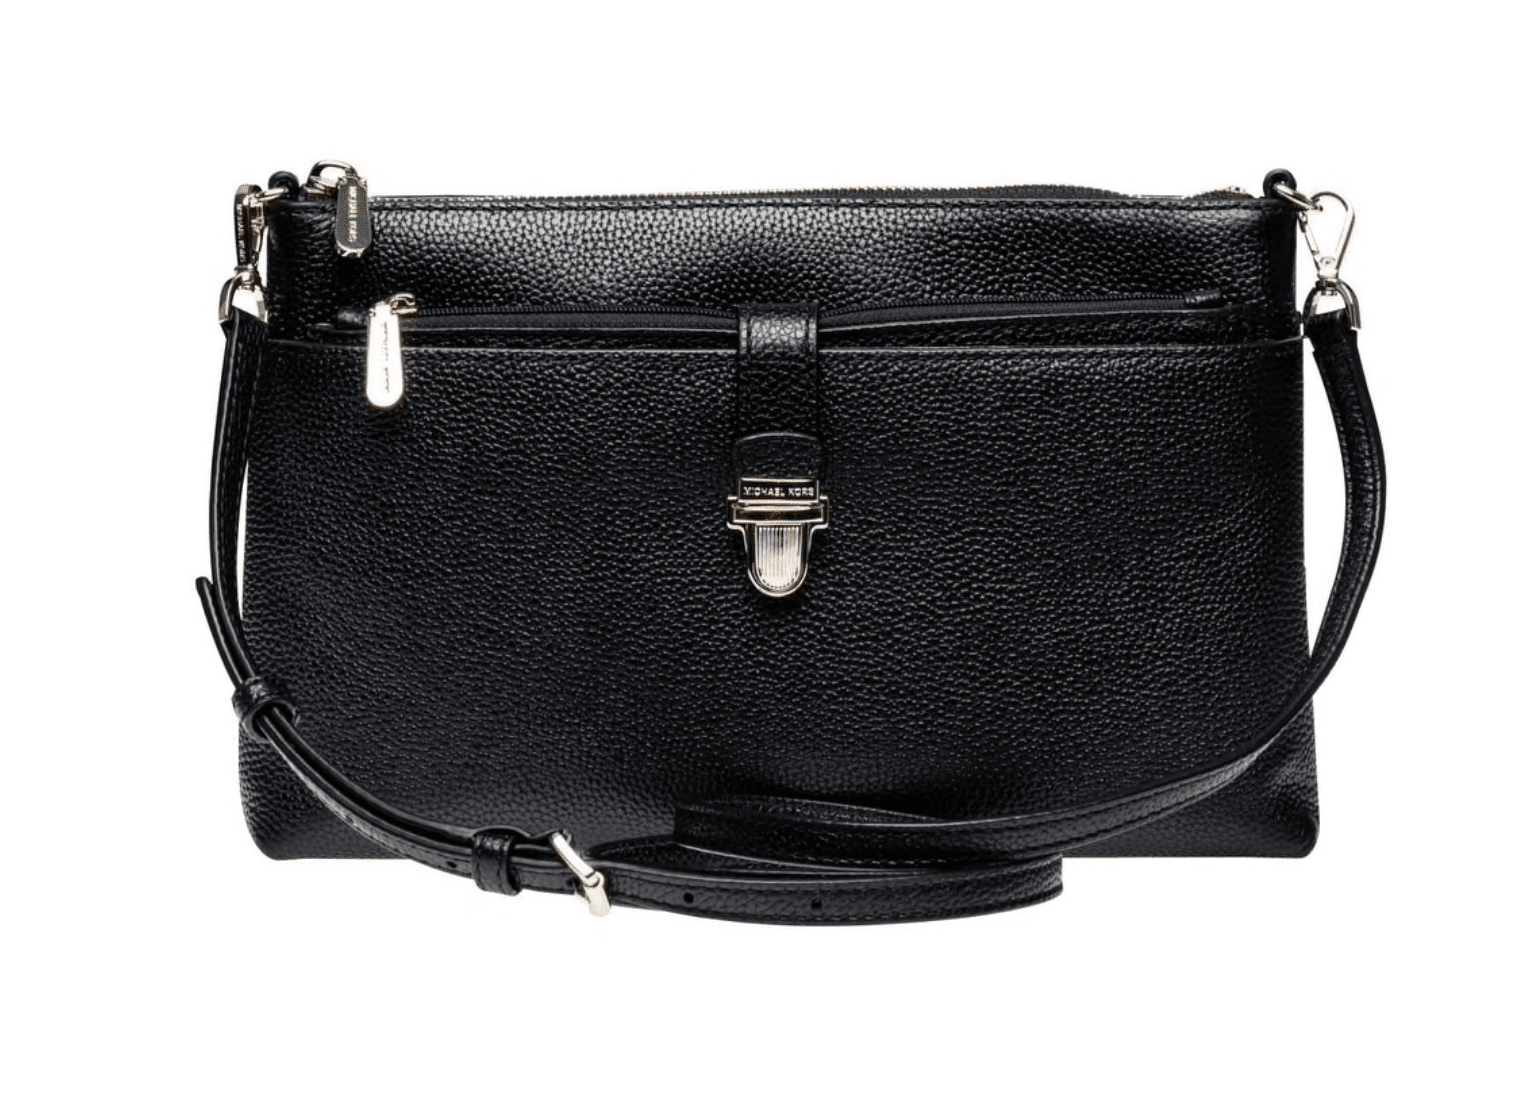 This Michael Kors black crossbody handbag is serious enough for a business  trip and fun enough for a night out. 594f52a32a257